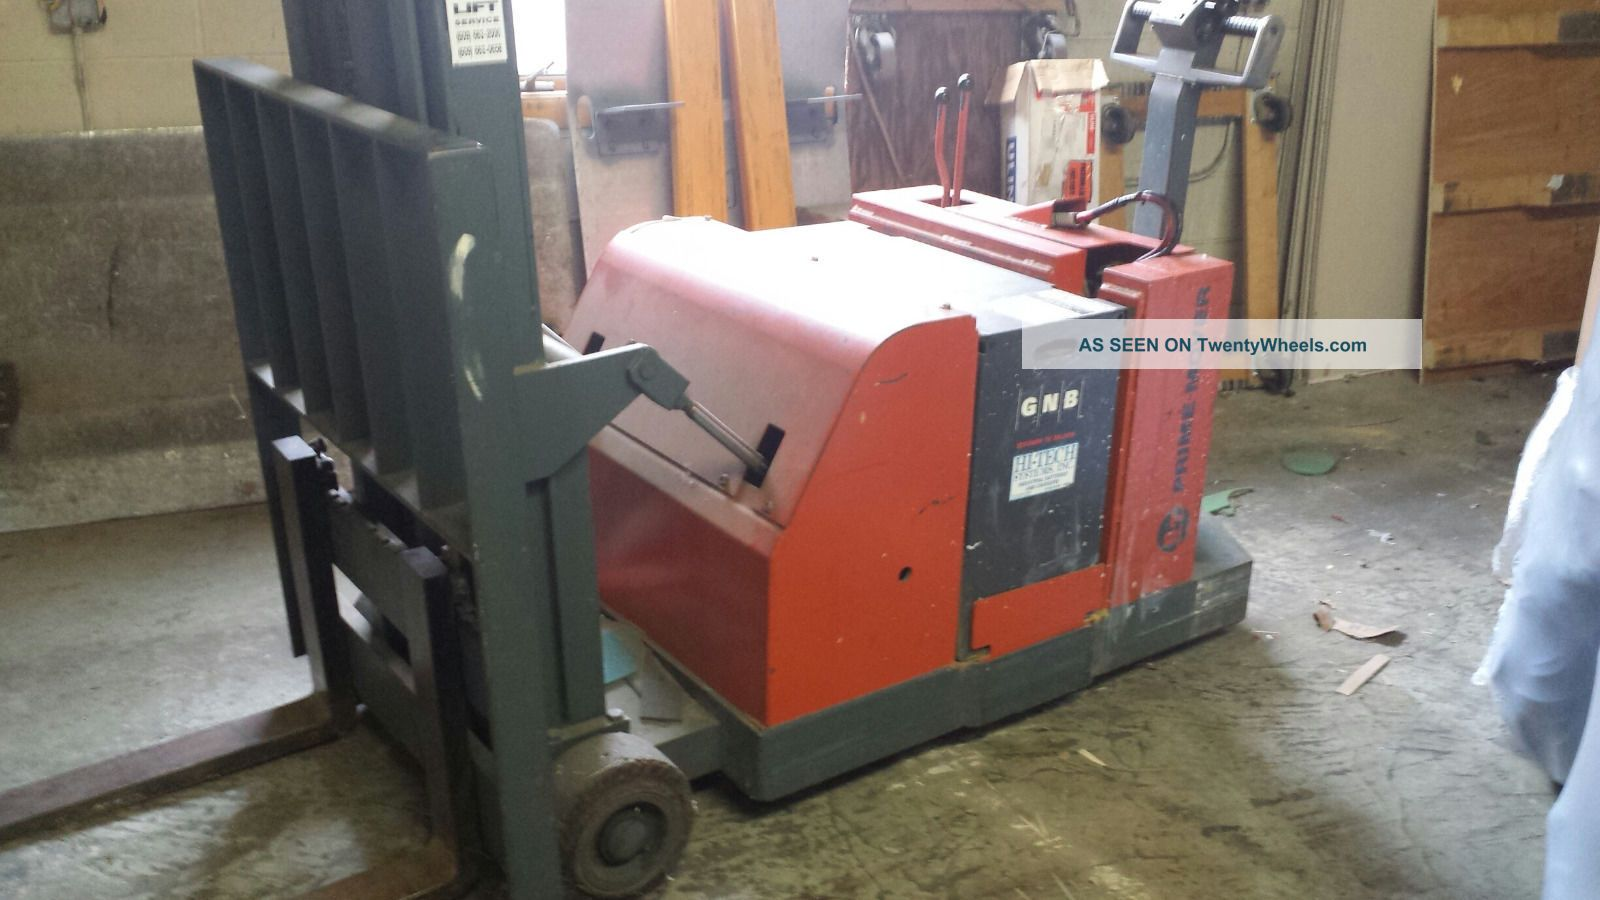 Hyster Electric Forklift Fault Codes Yale Forklift Code Manual Share The Knownledge Oil